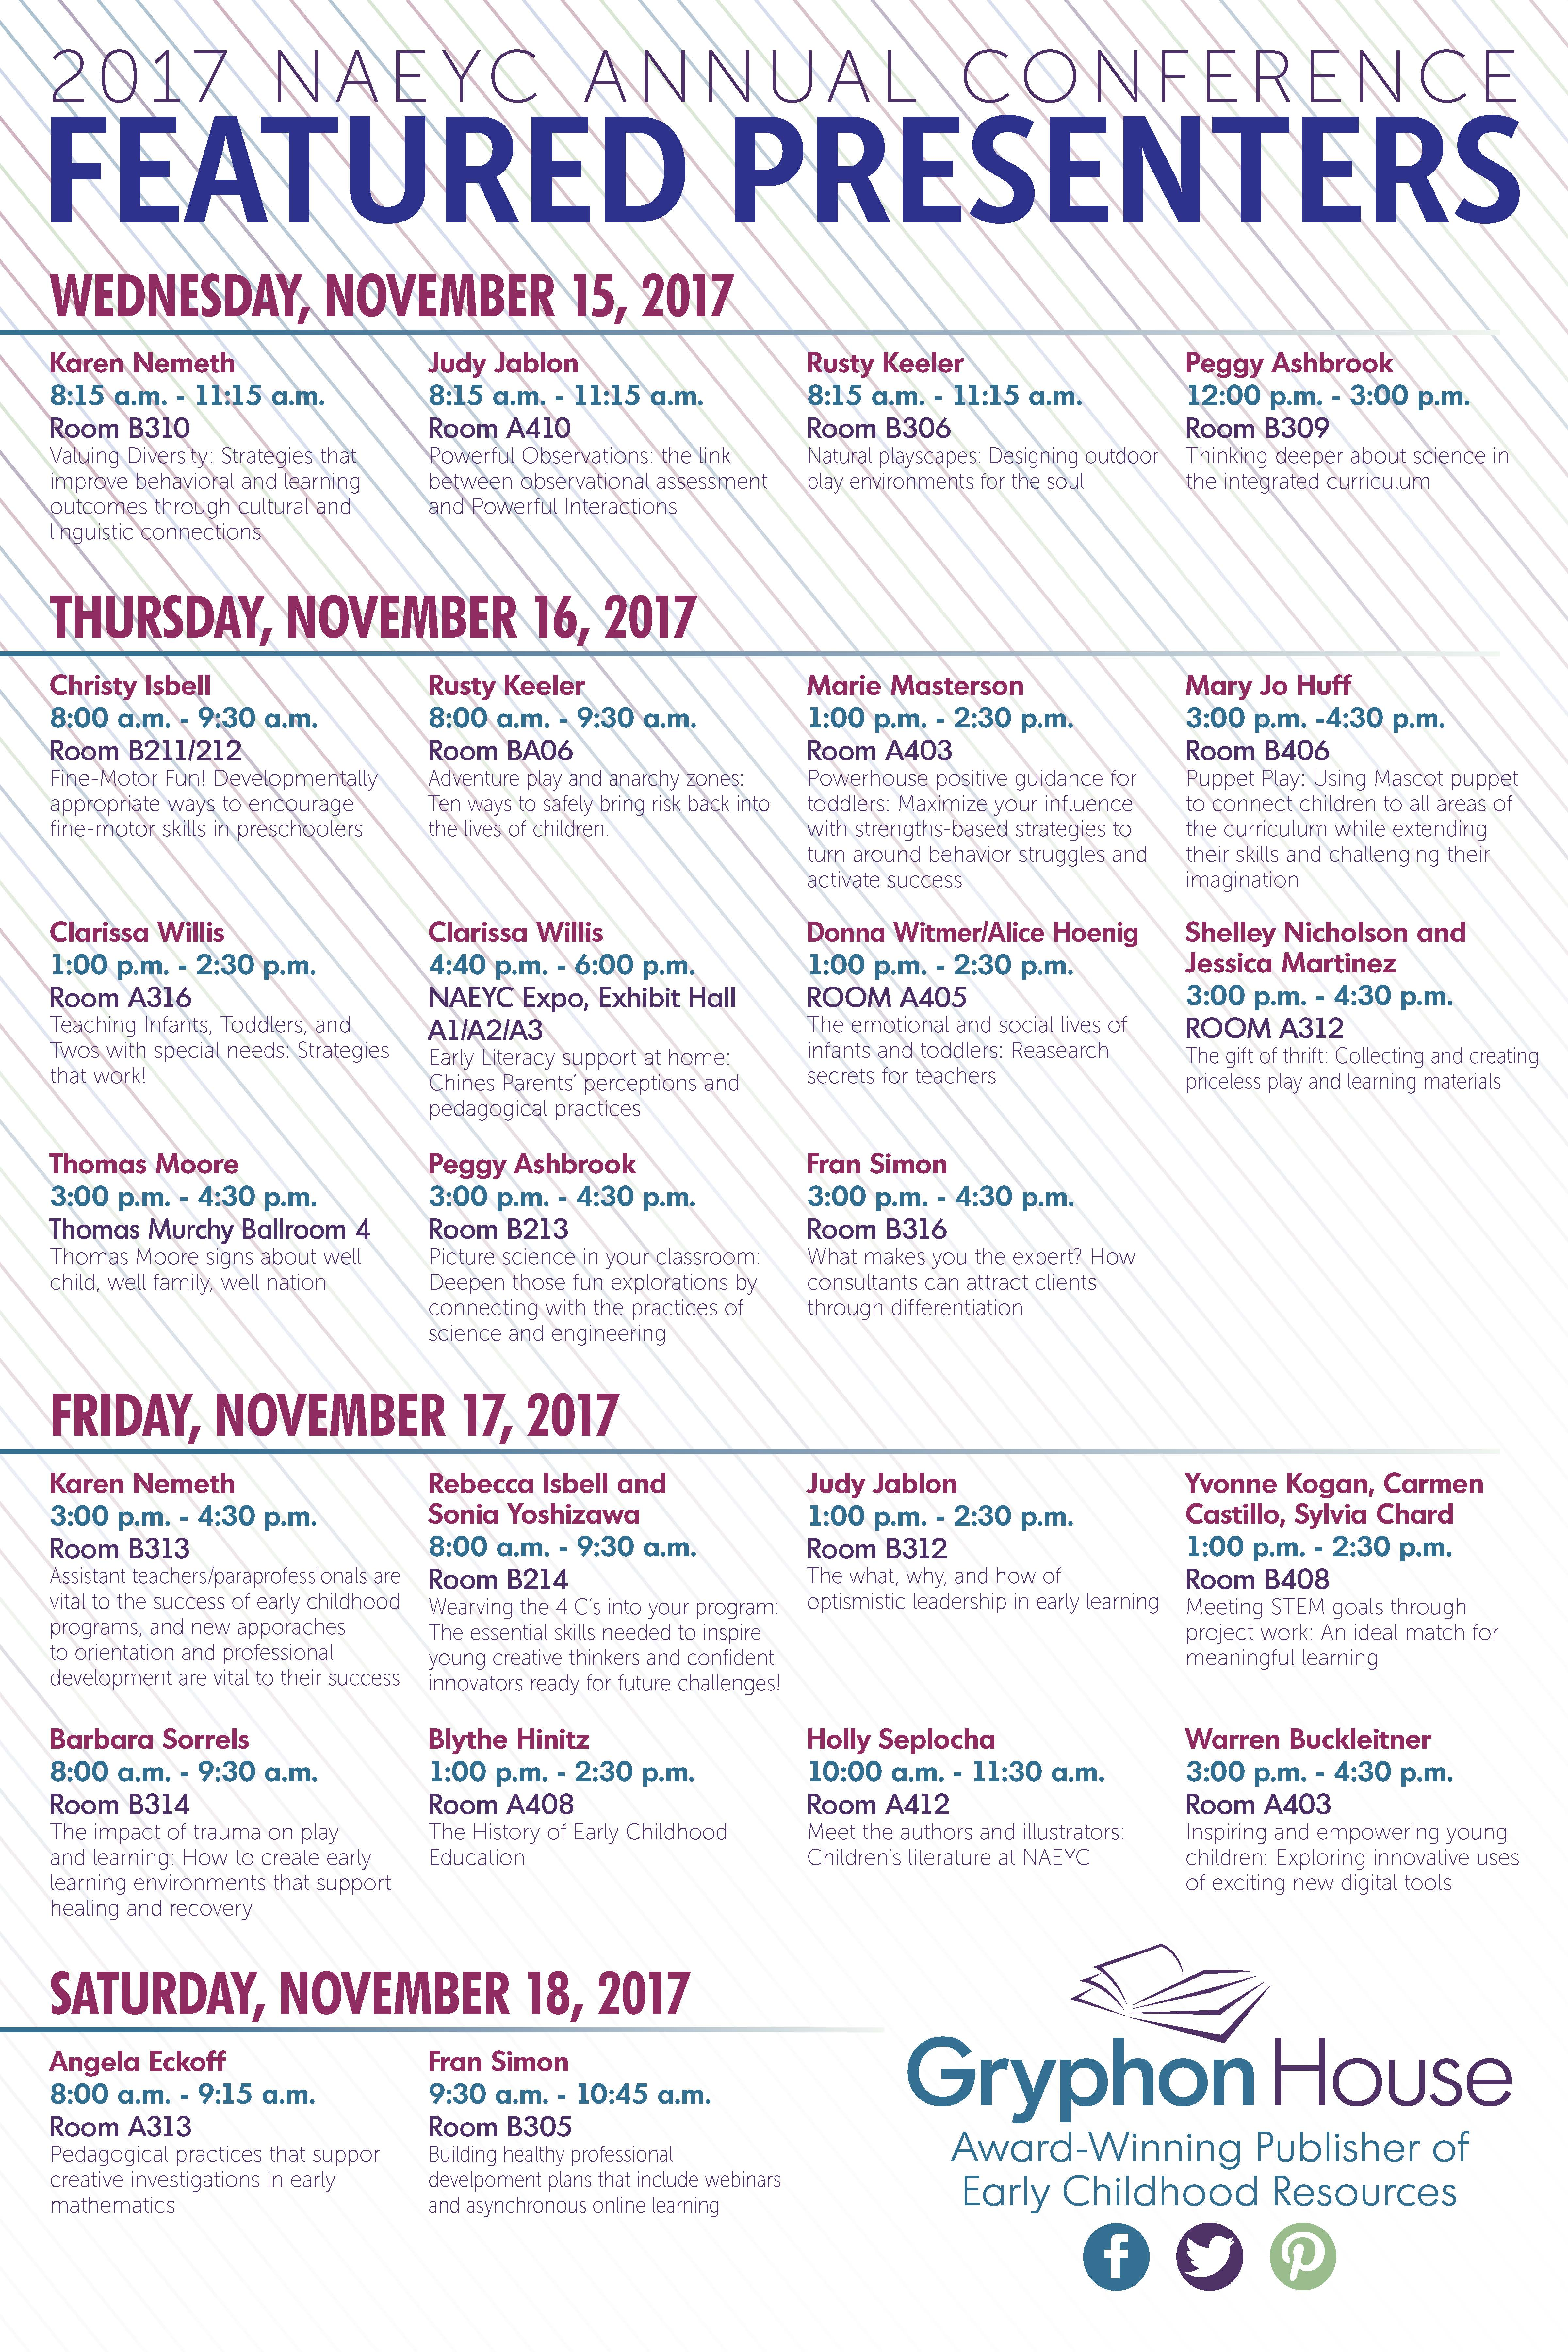 NAEYC 2017 Schedule of Events